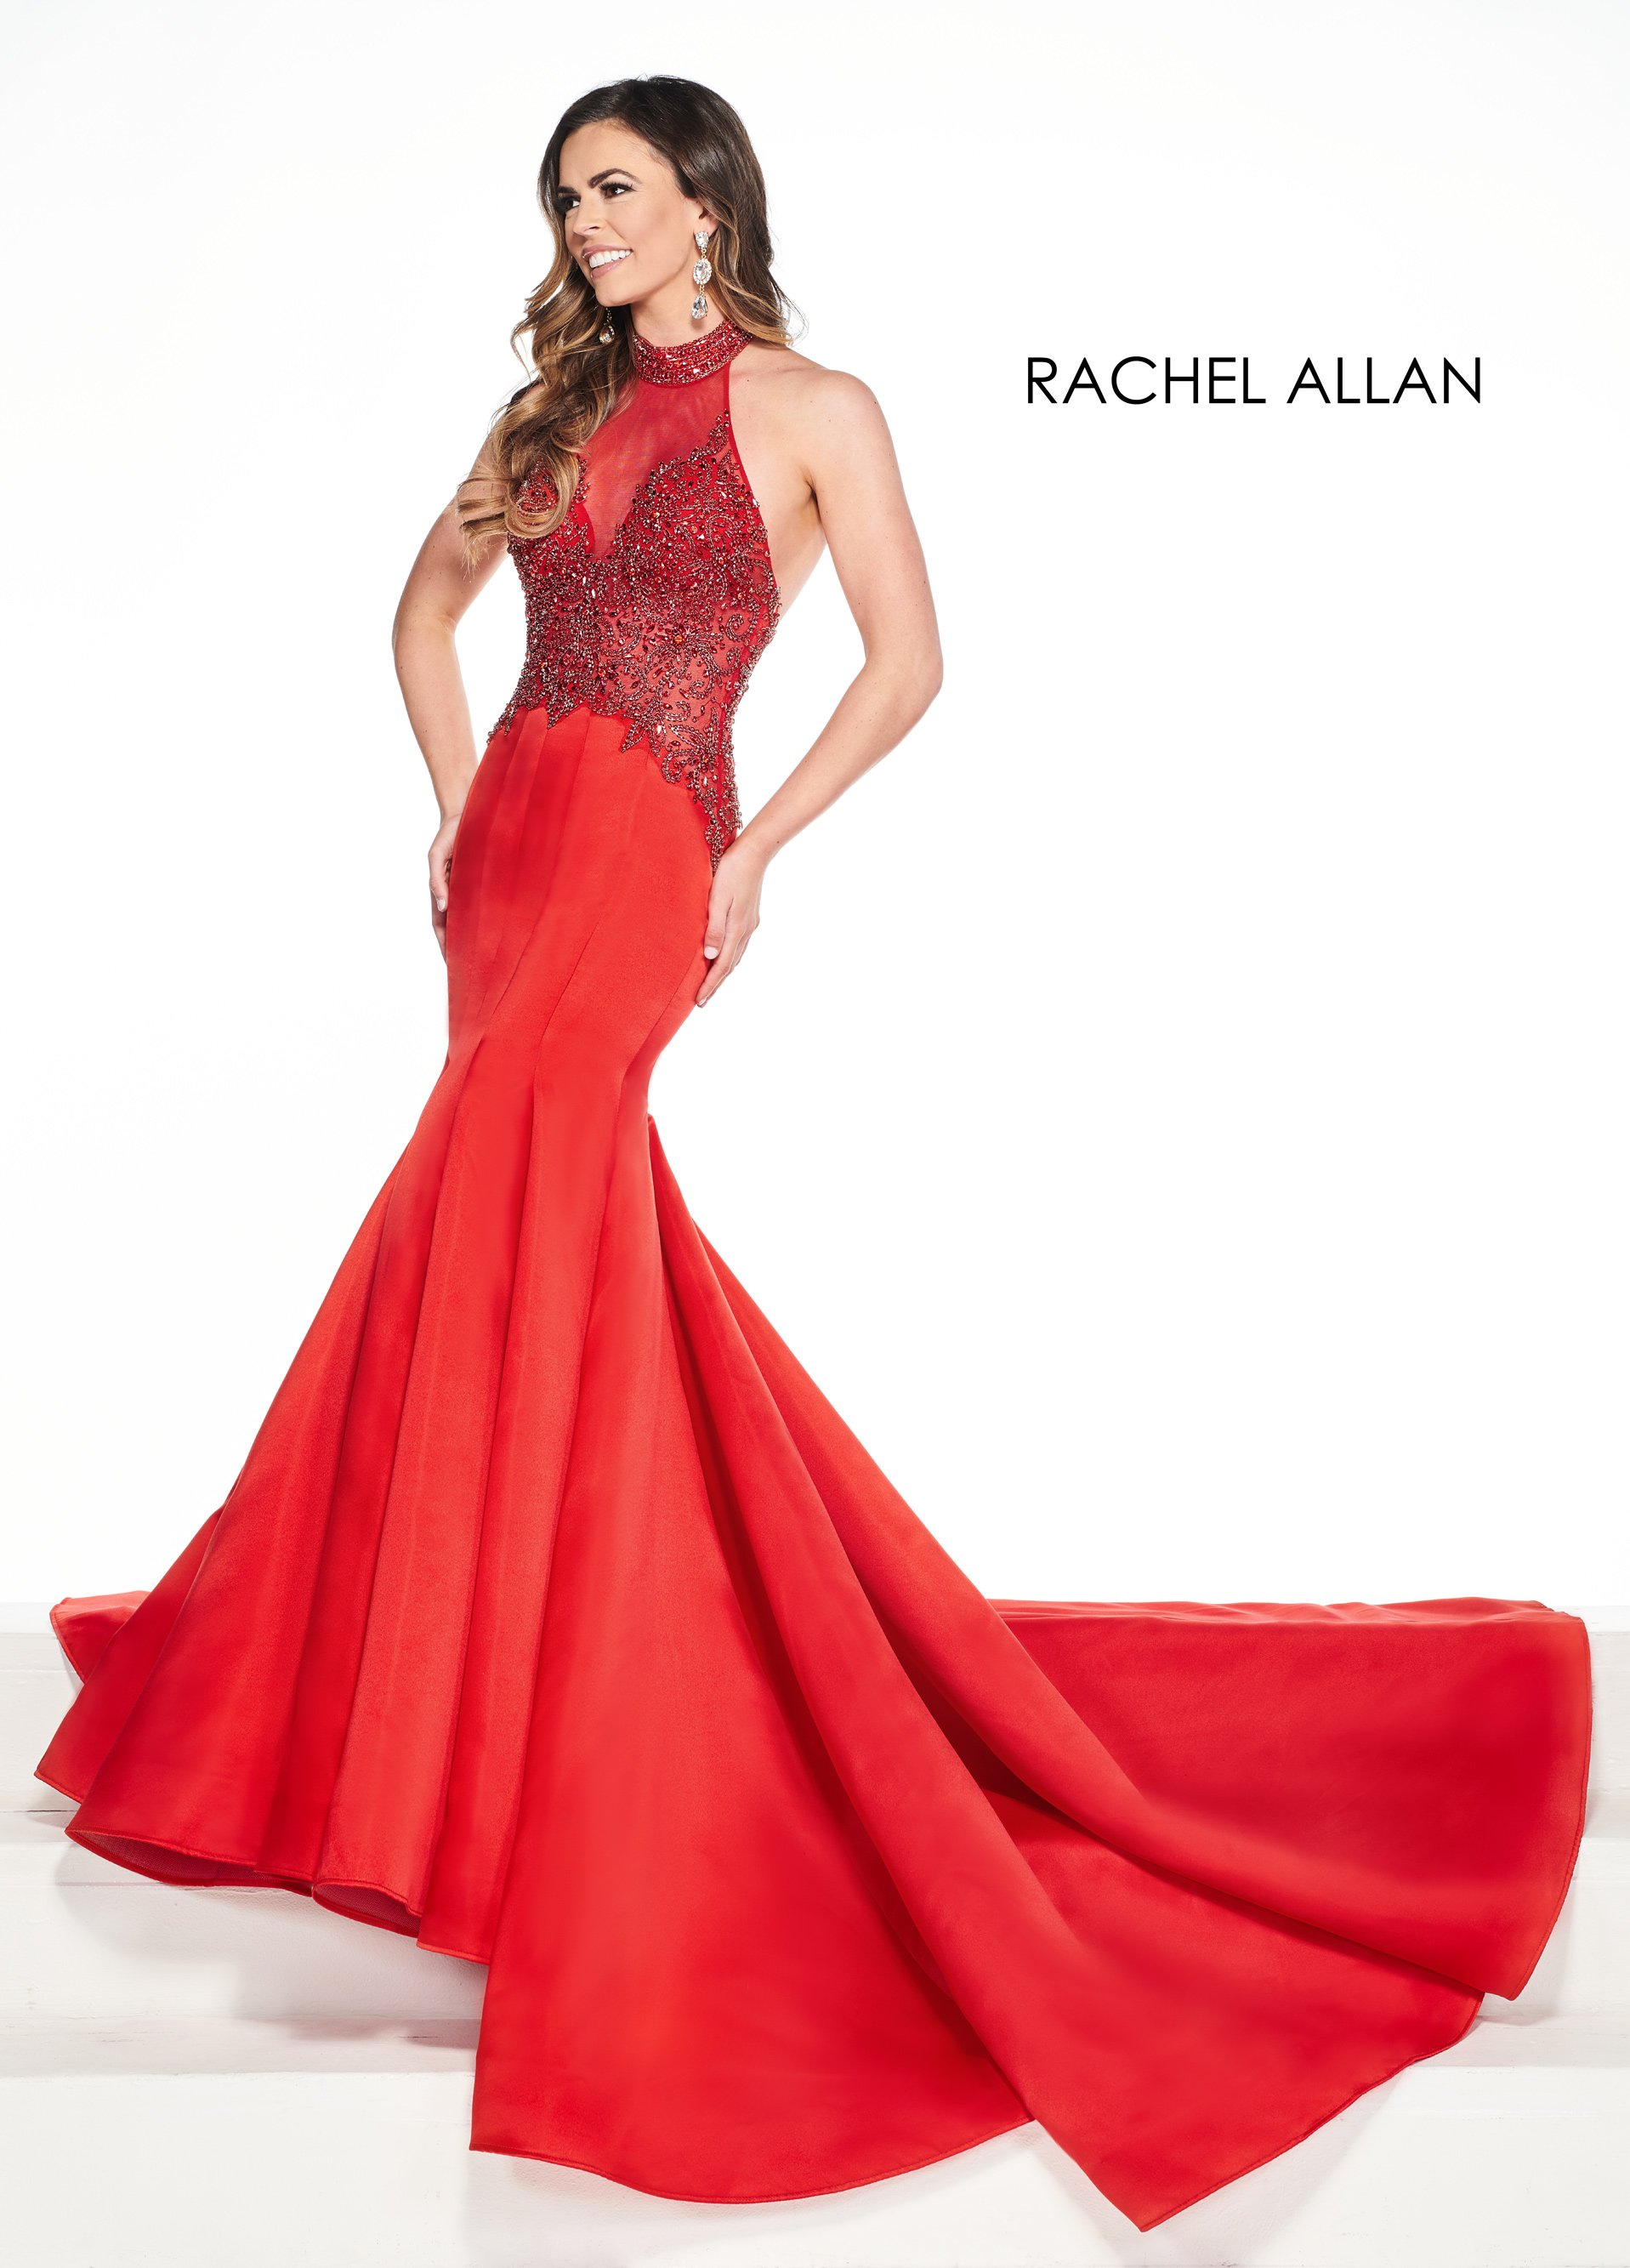 Halter Mermaid Pageant Dresses in Red Color